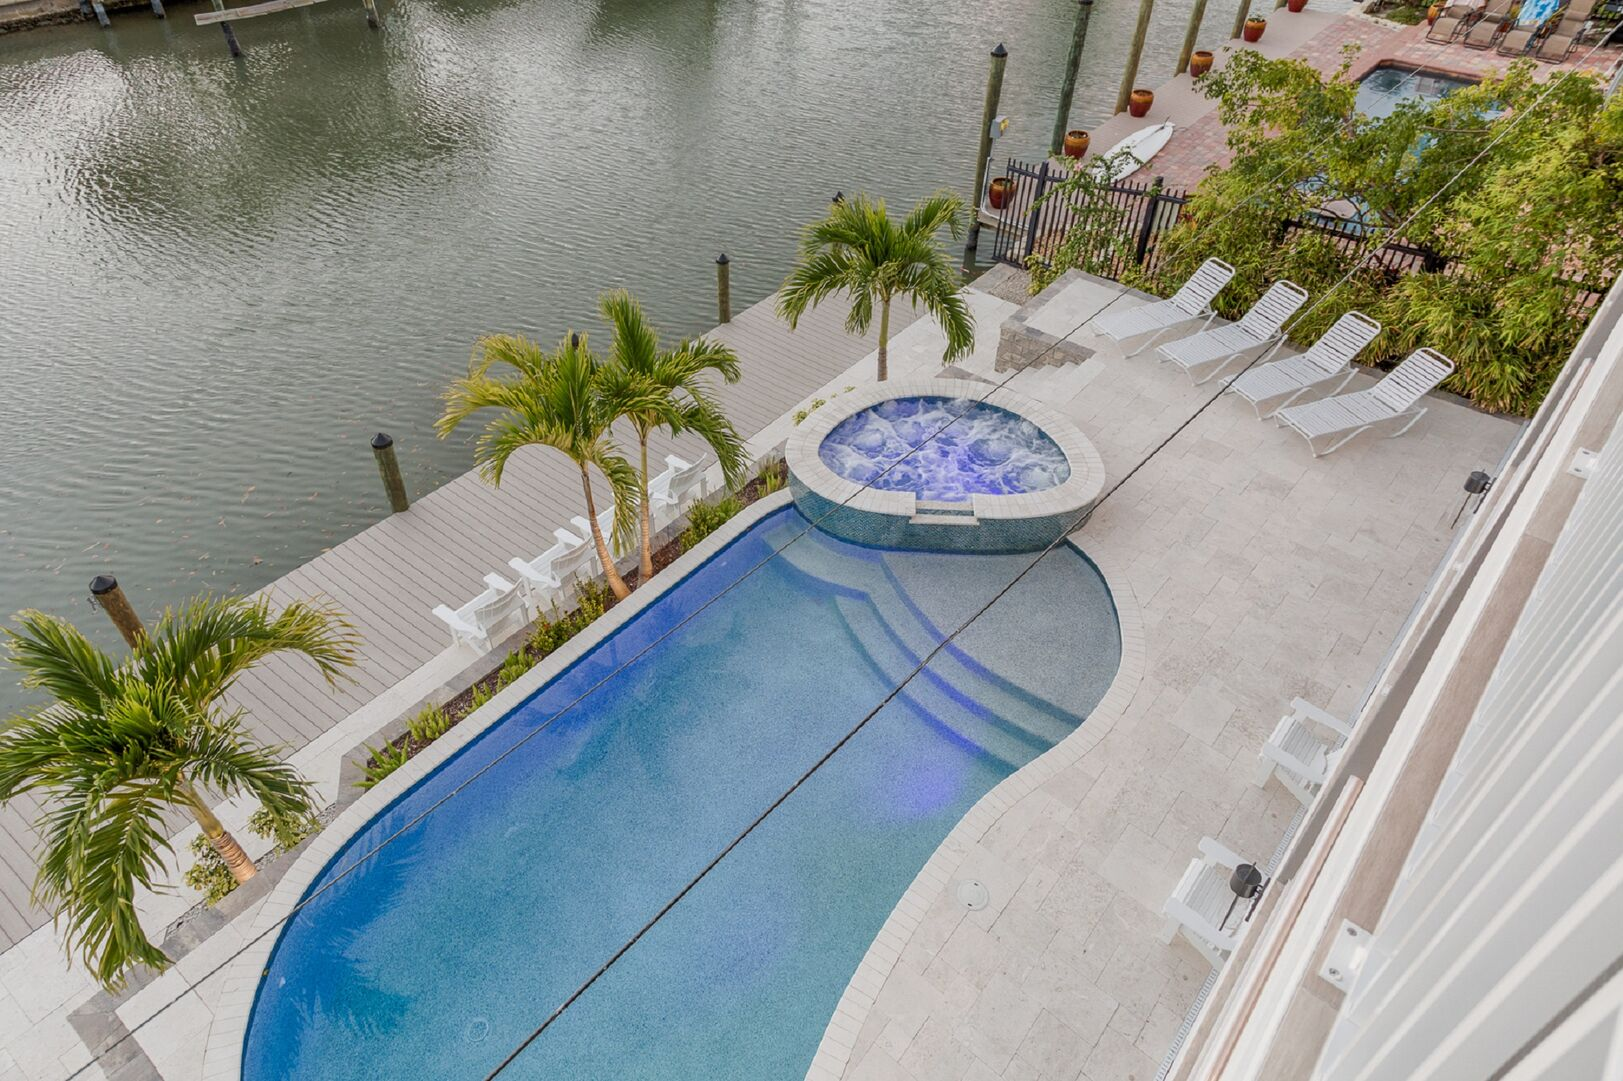 The pool and hot tub of this vacation house for rent in Fort Myers FL.